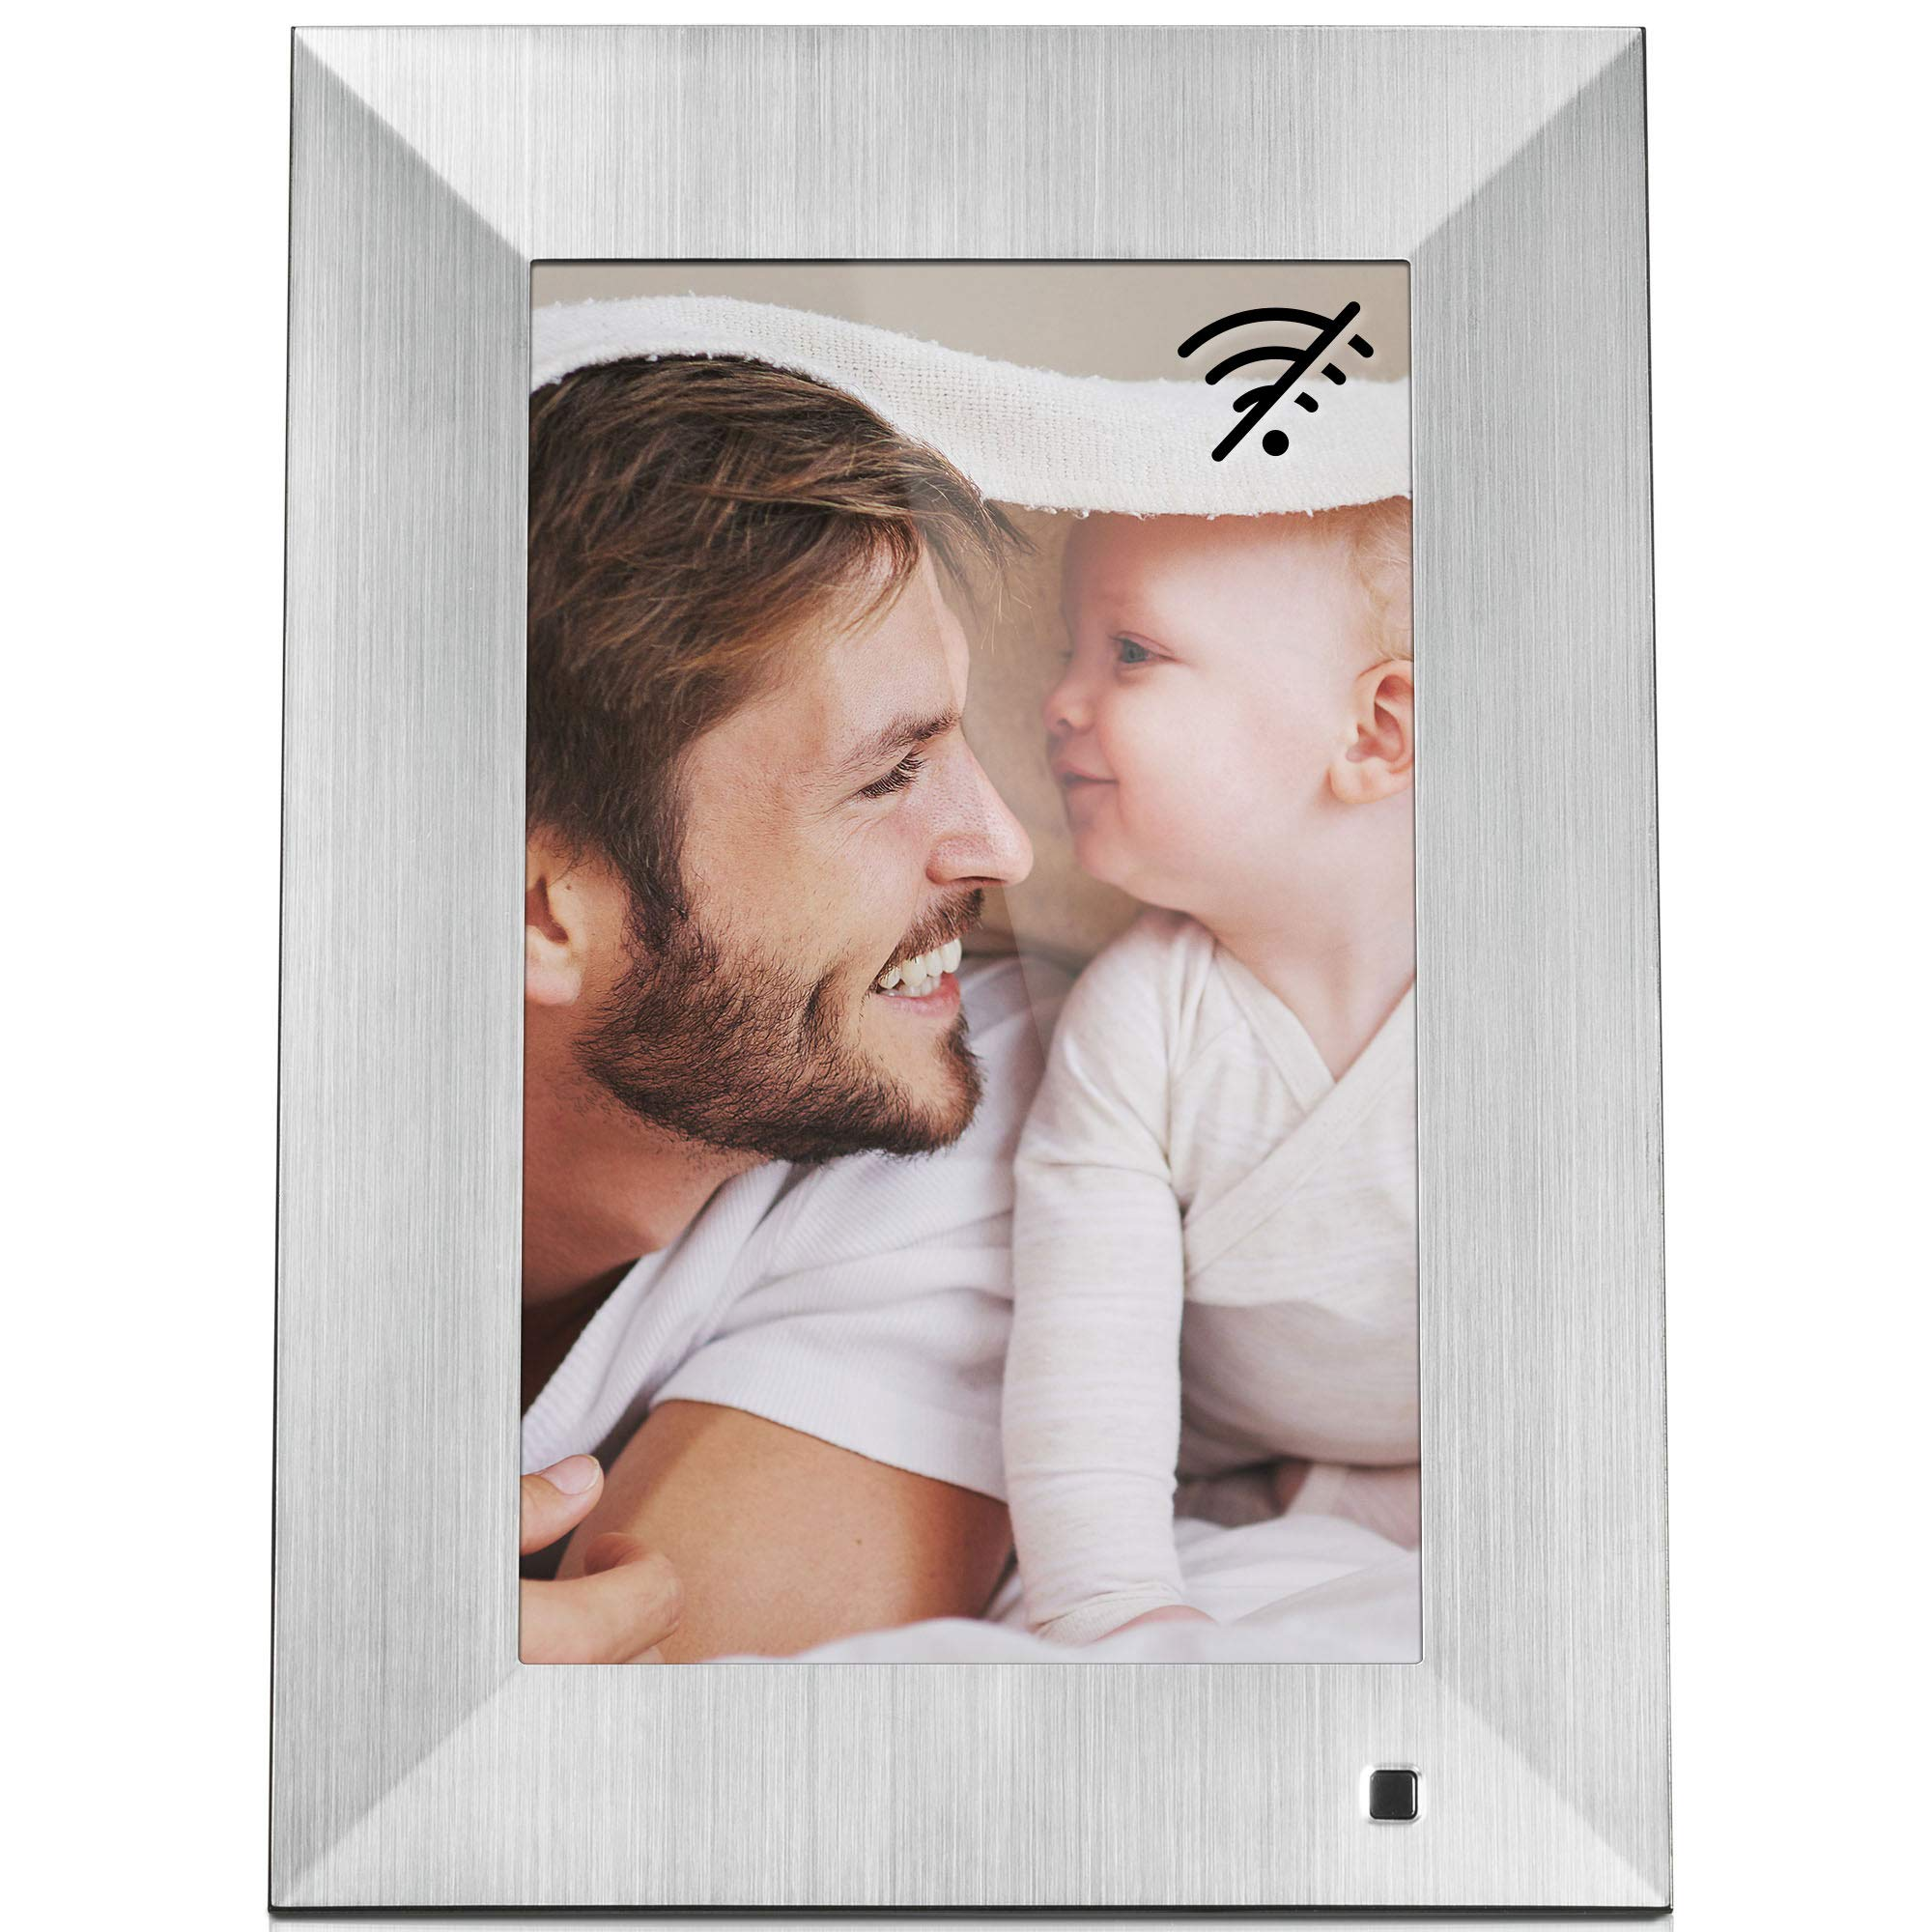 NIX Lux 10-Inch Digital Photo Frame X10J Metal (Non-WiFi) - Wall-Mountable Digital Frame with 1280x800 HD IPS Display, Motion Sensor, USB and SD Card Slots and Remote Control, 8 GB USB Stick Included by NIX